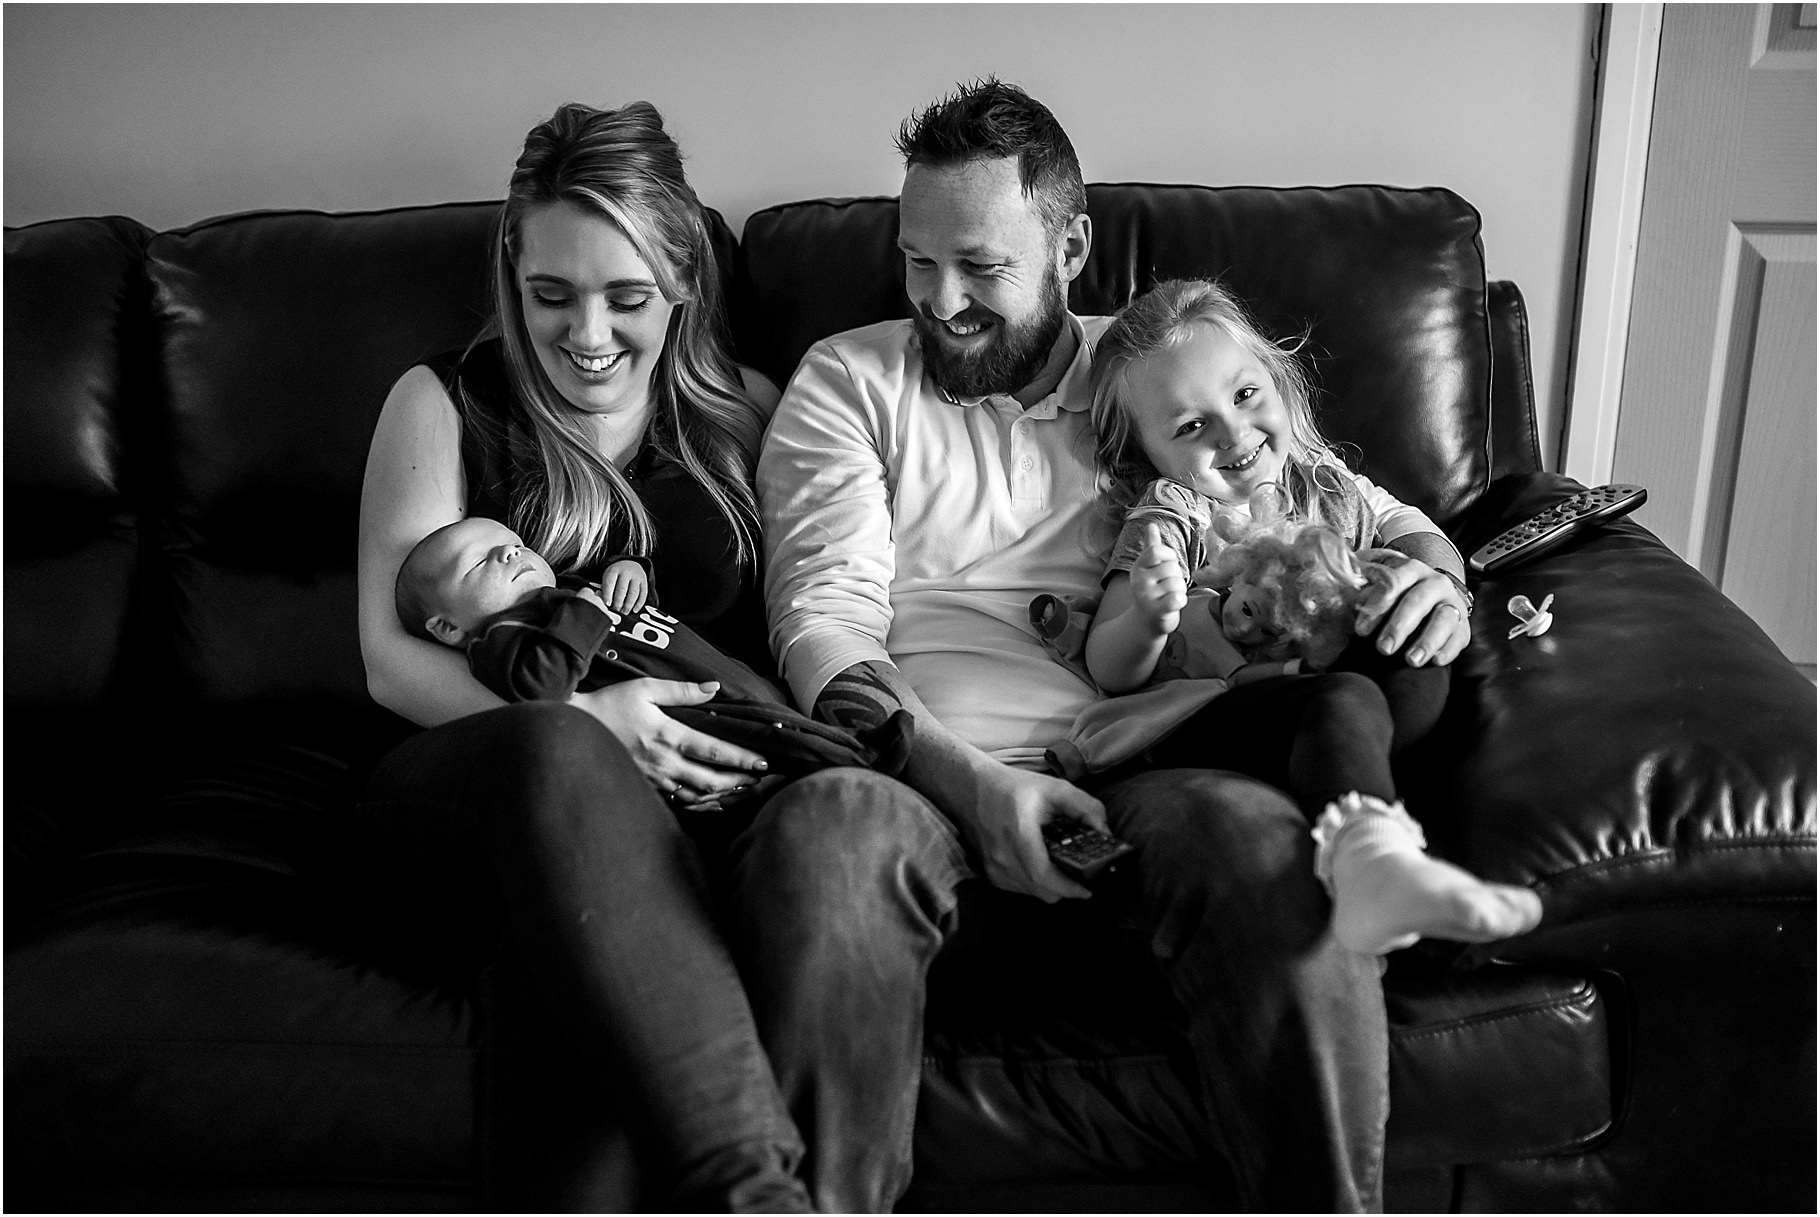 lancashire-family-portraits-documentary-newborn-48.jpg